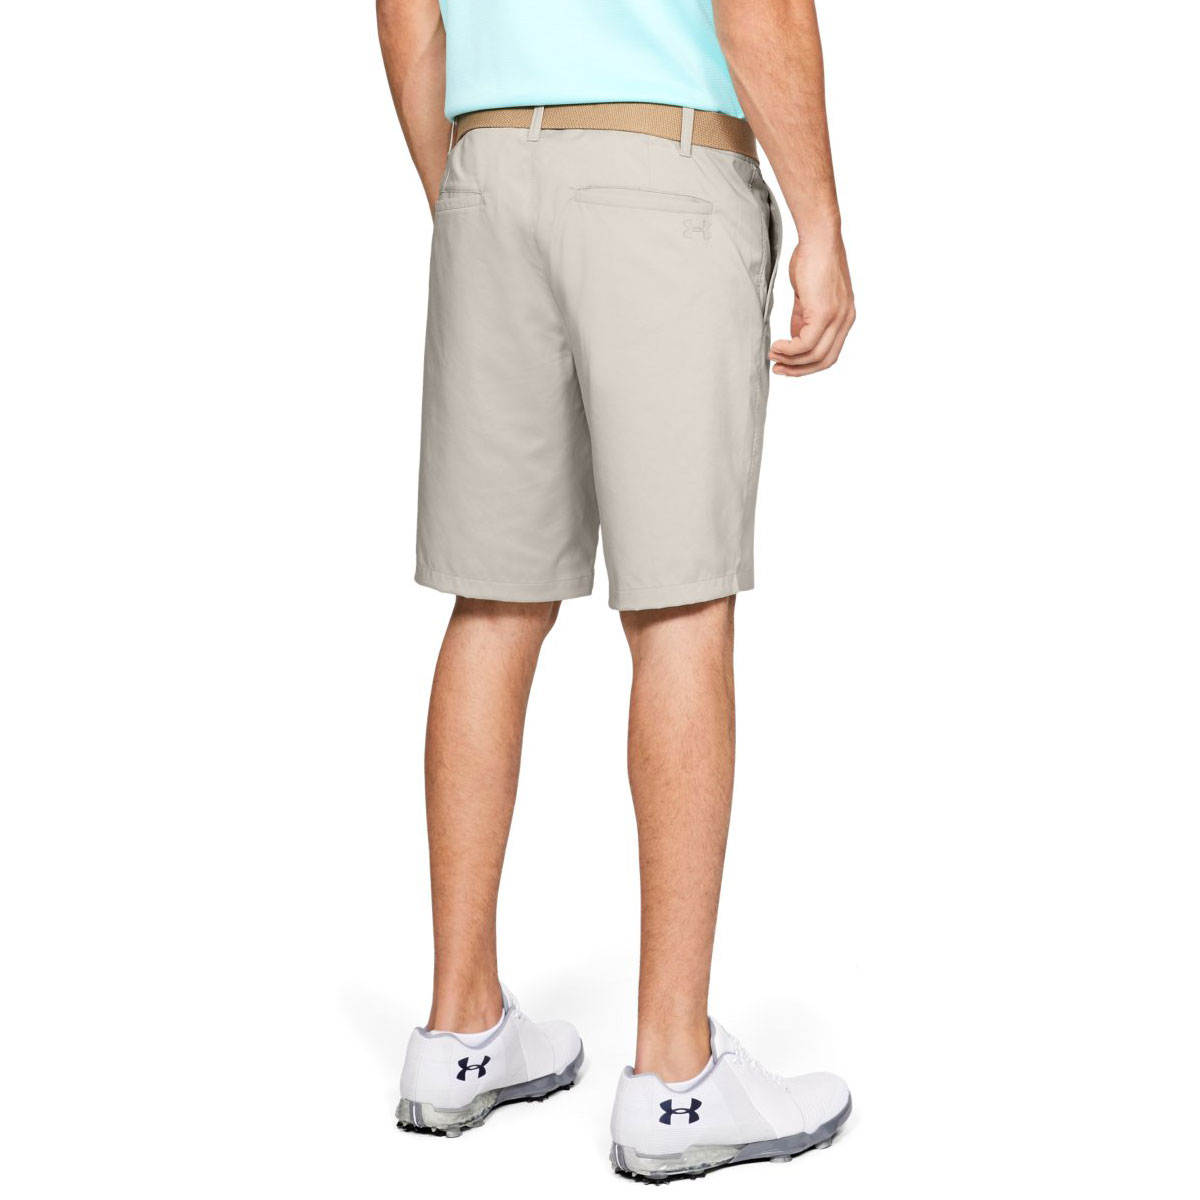 Under-Armour-Mens-EU-Tech-Stretch-Soft-Fitted-Golf-Shorts Indexbild 7